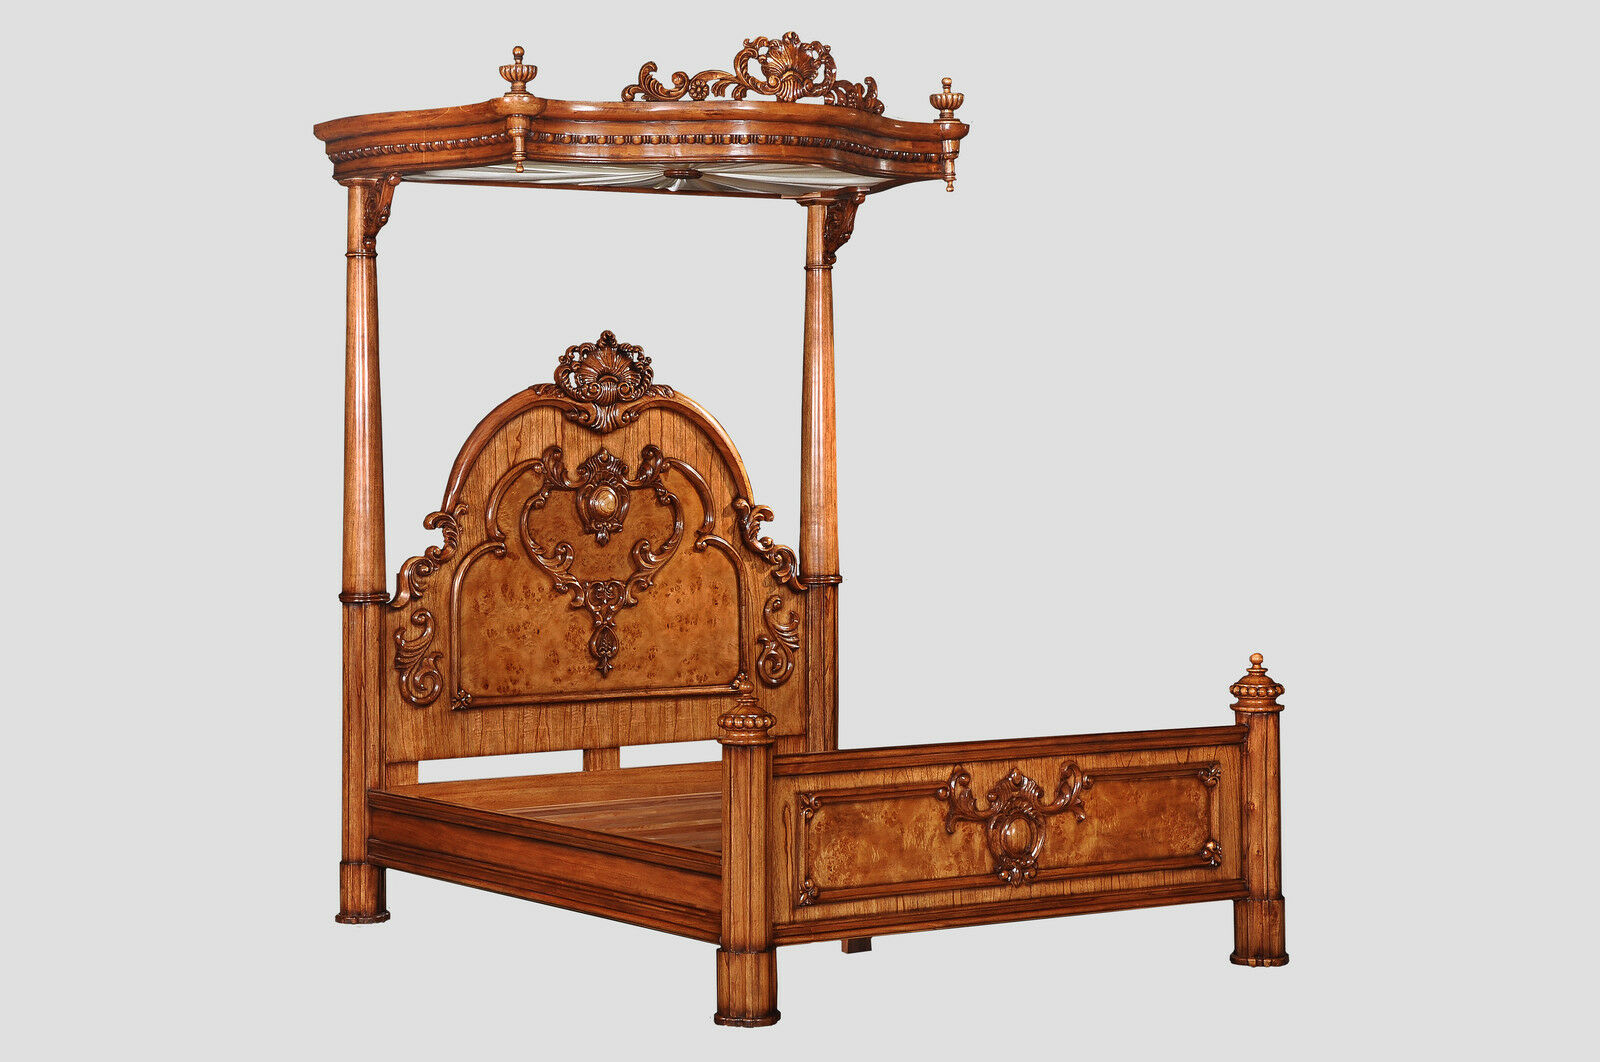 6' Super King Hampton Walnut Half Tester Canopy Bed Antique Reproduction BW003